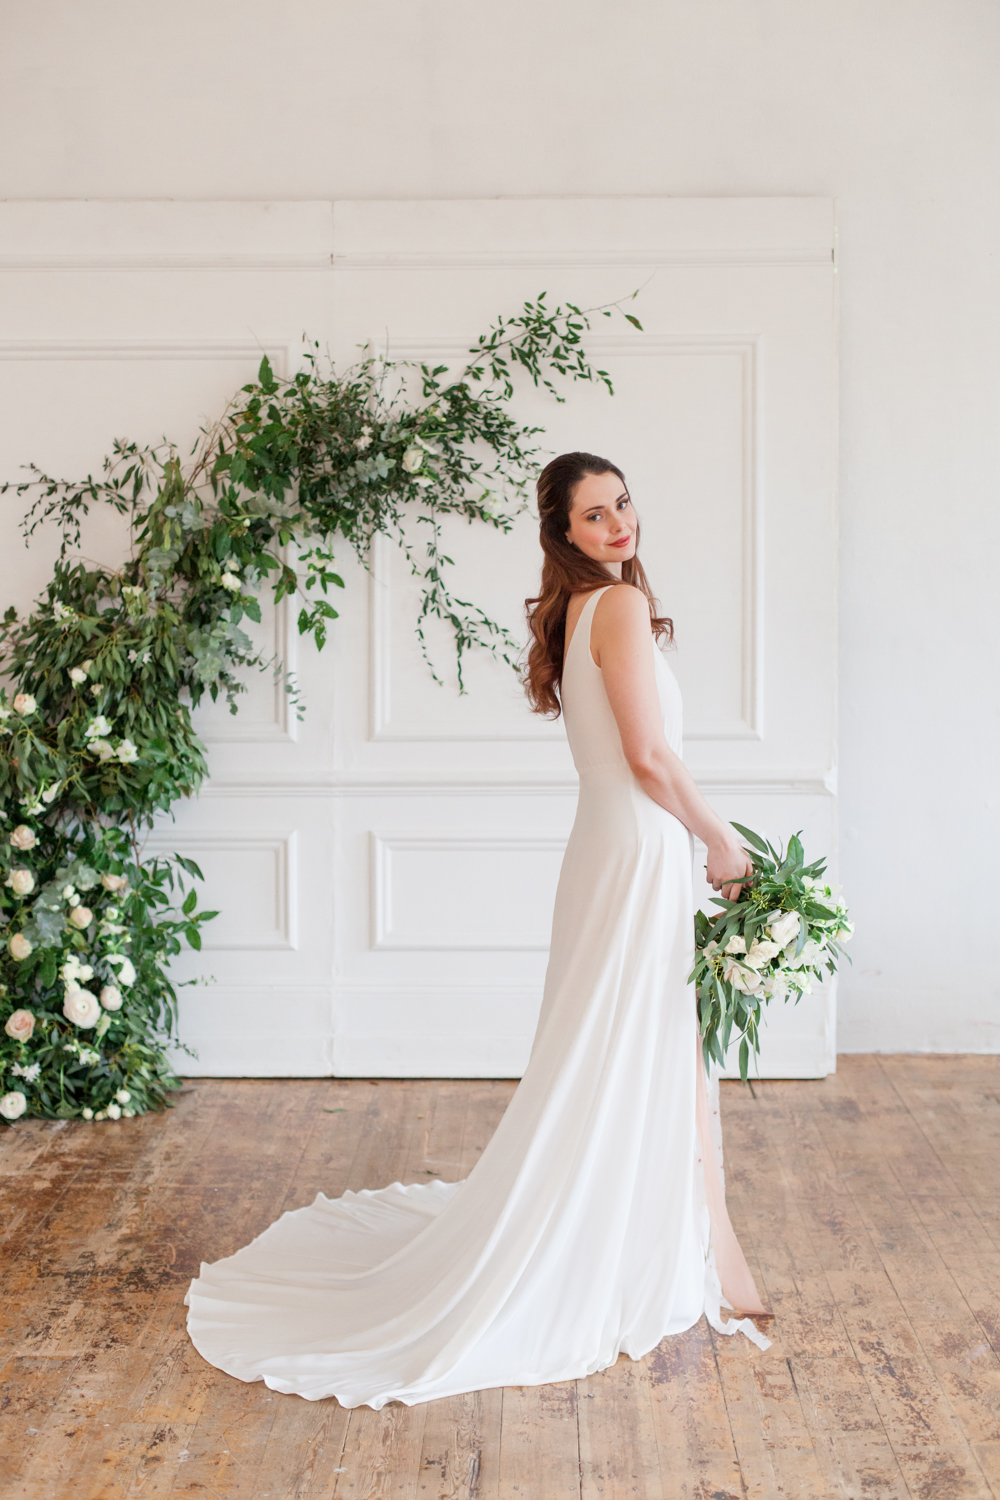 The Timeless Stylist - Elegant and Romantic Wedding Inspiration